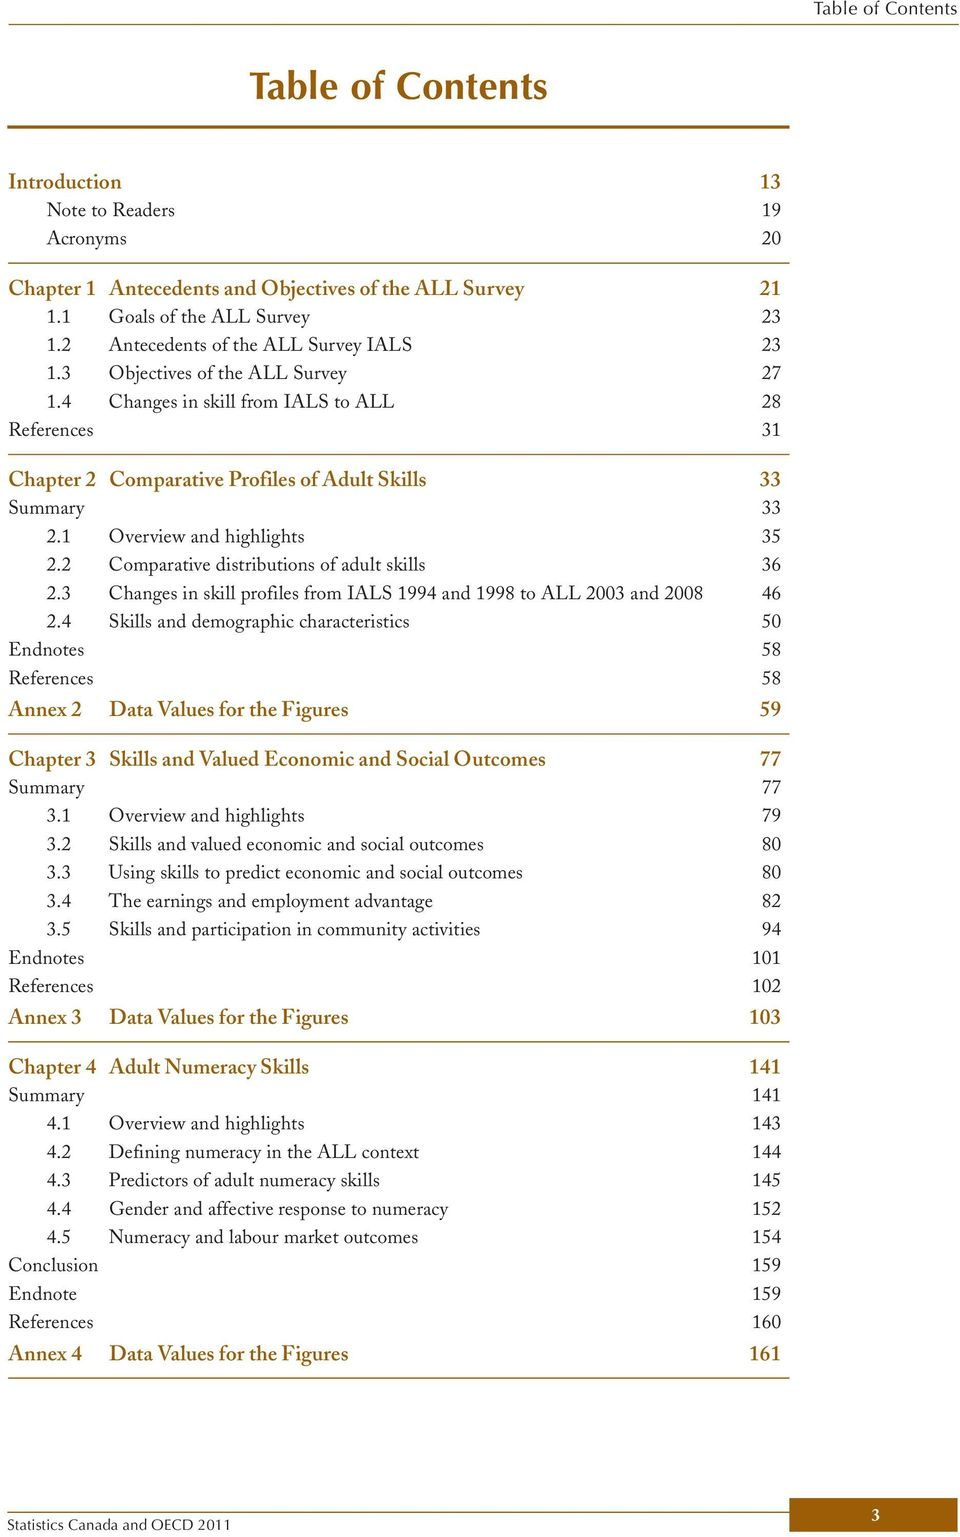 1 Overview and highlights 35 2.2 Comparative distributions of adult skills 36 2.3 Changes in skill profiles from IALS 1994 and 1998 to ALL 2003 and 2008 46 2.